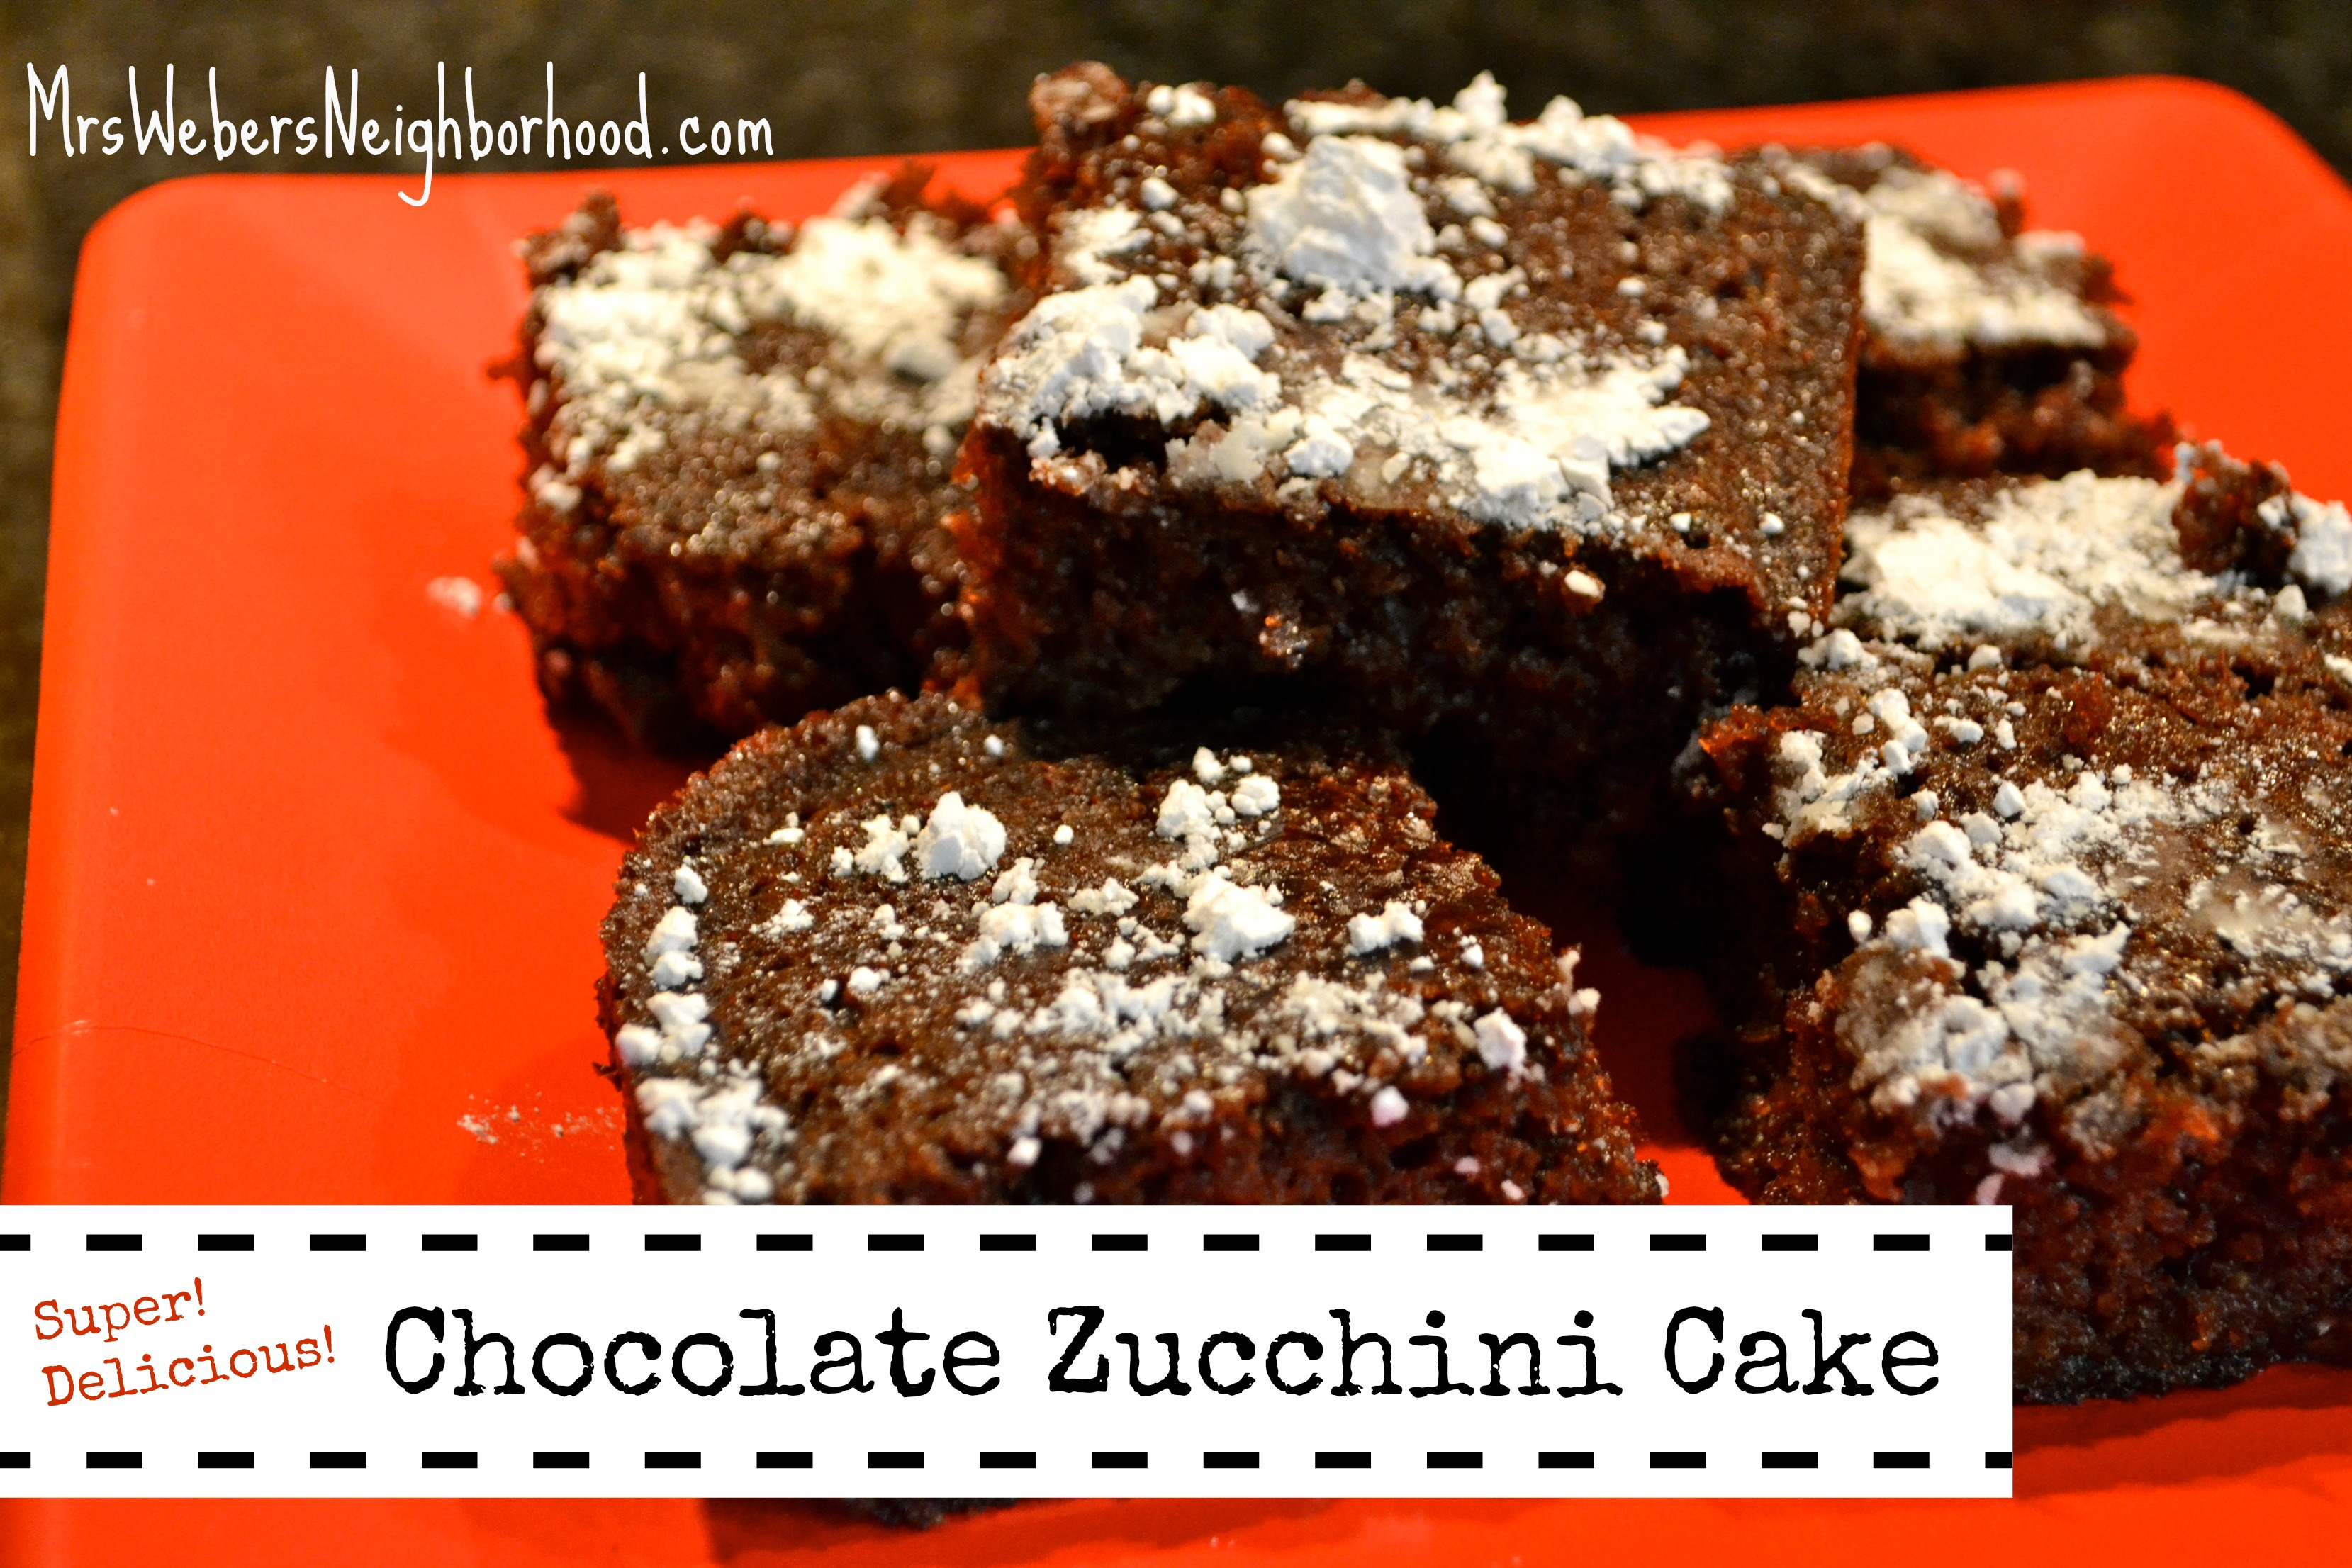 chocolate zucchini cake Archives - Mrs. Weber's Neighborhood